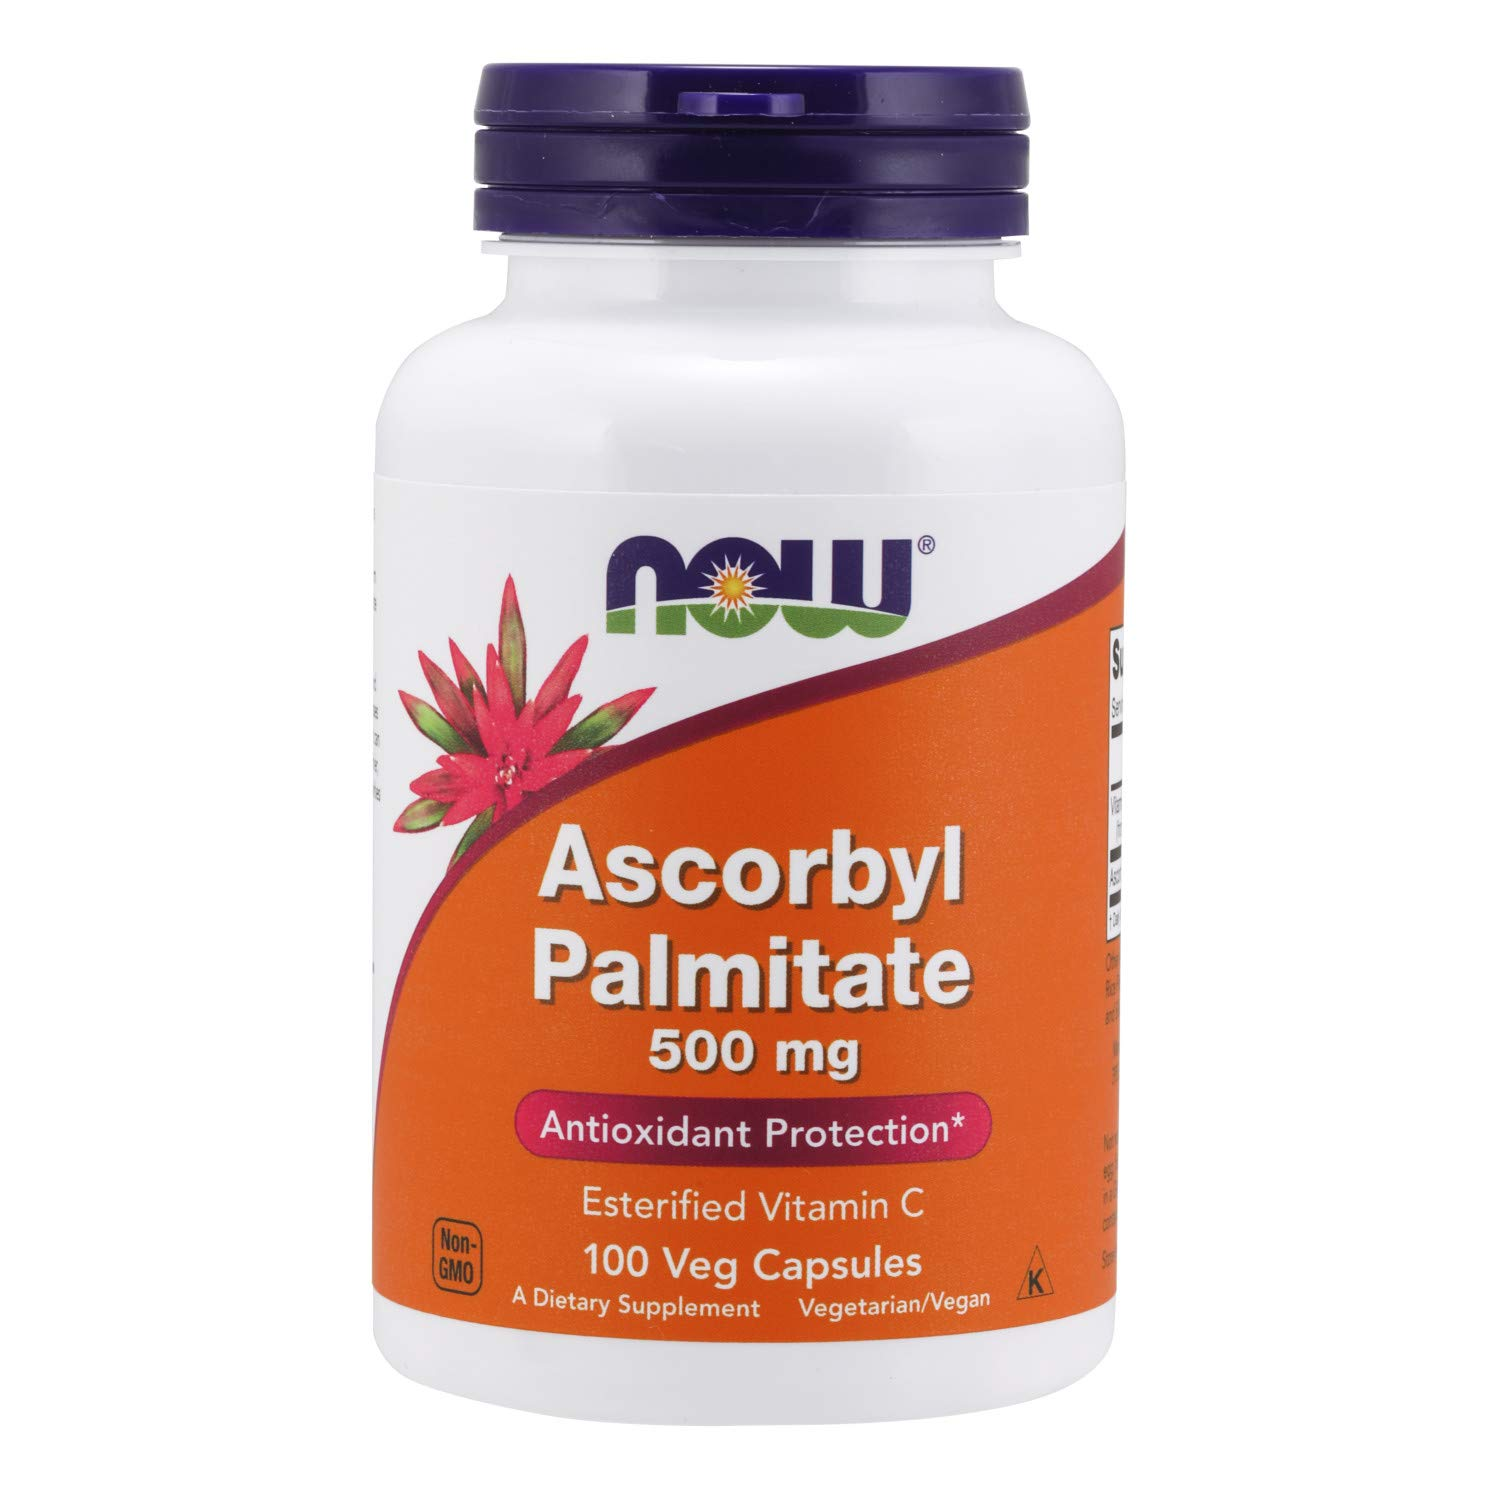 NOW Supplements, Ascorbyl Palmitate 500 mg, Esterified Vitamin C, Antioxidant Protection*, 100 Veg Capsules